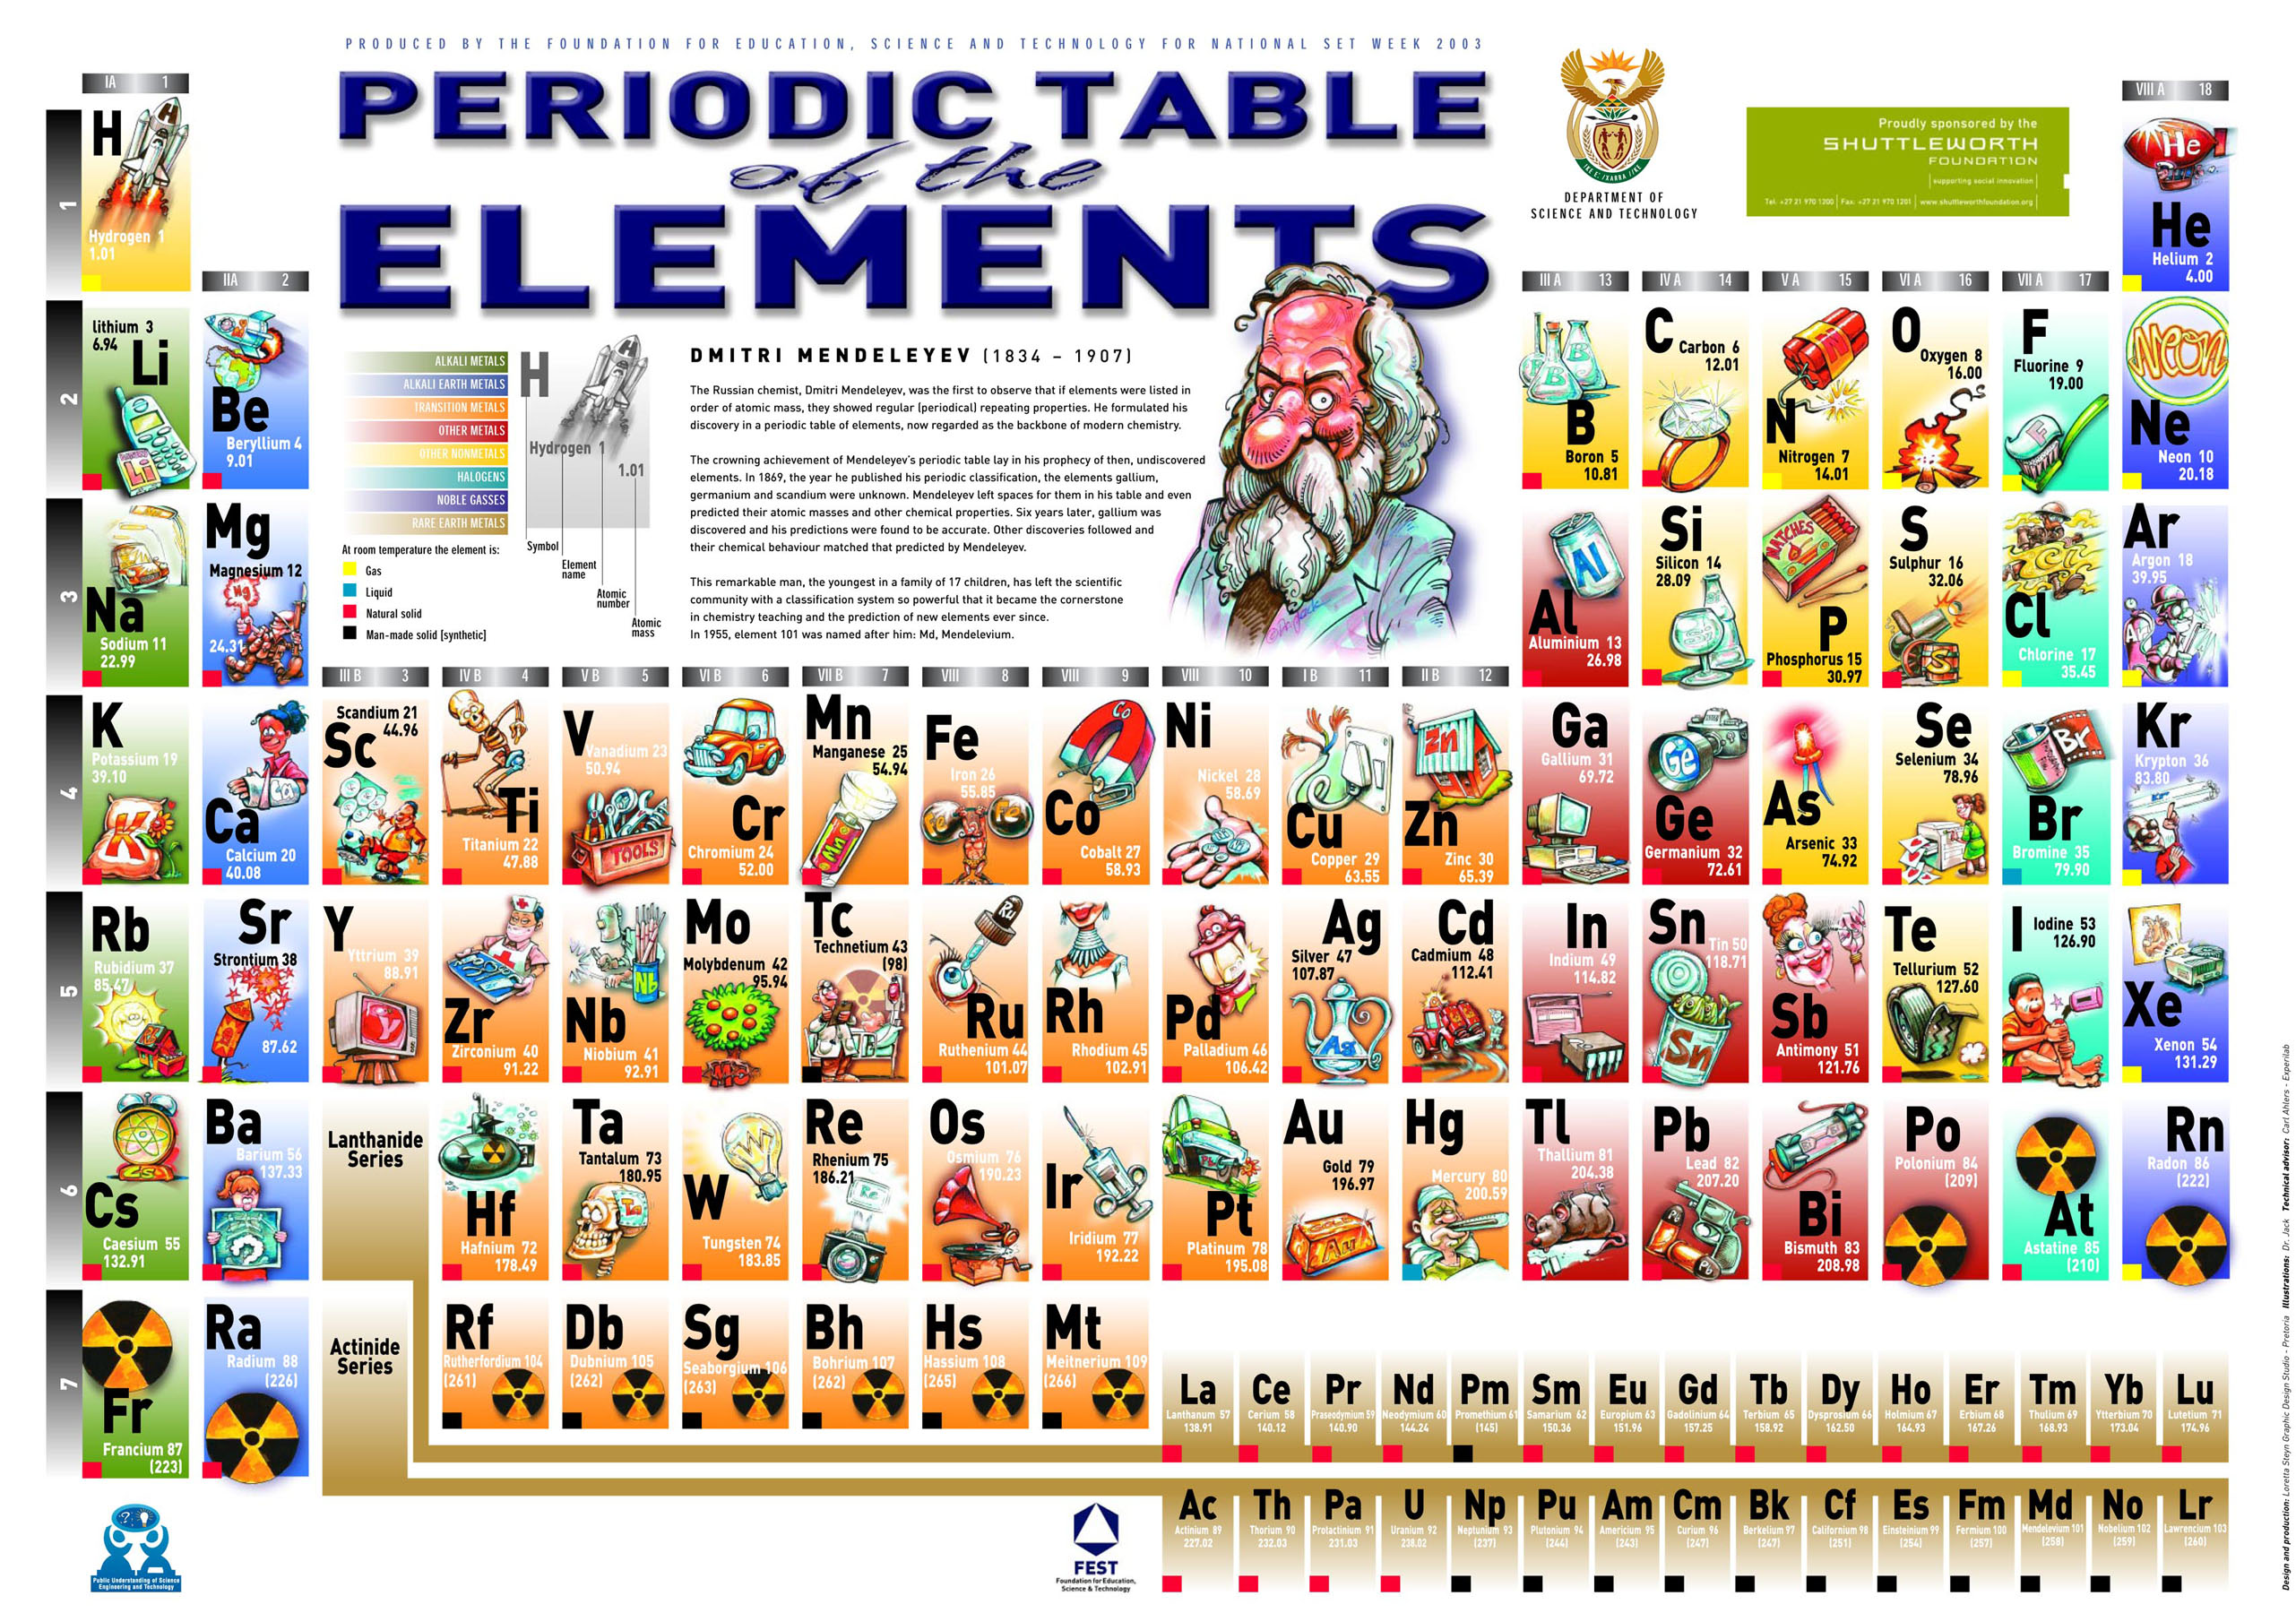 jpeg version of the table another amazing beautifully illustrated periodic